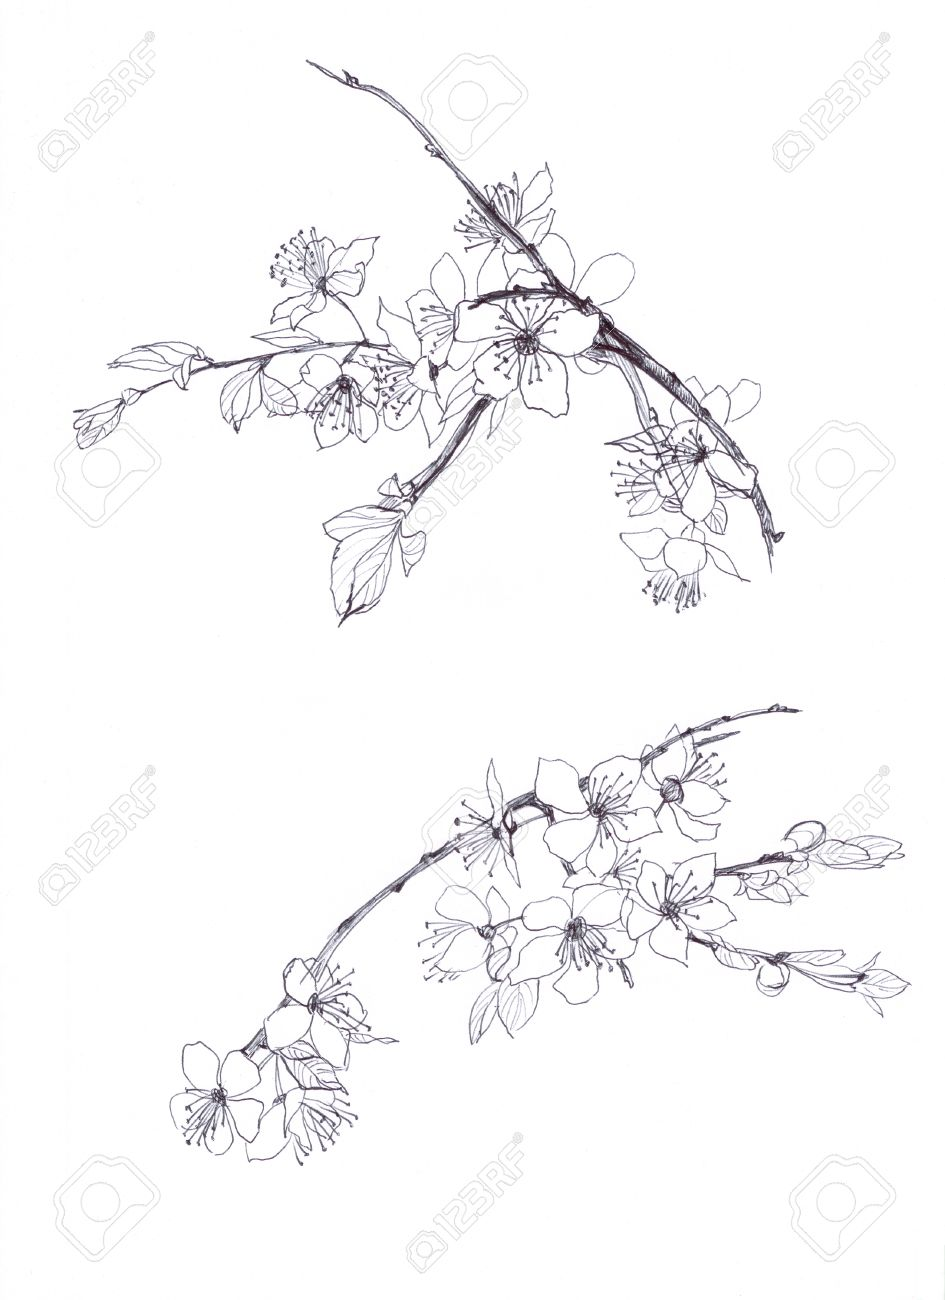 945x1300 Cherry Blossom Hand Drawn Pencil Stock Photo, Picture And Royalty